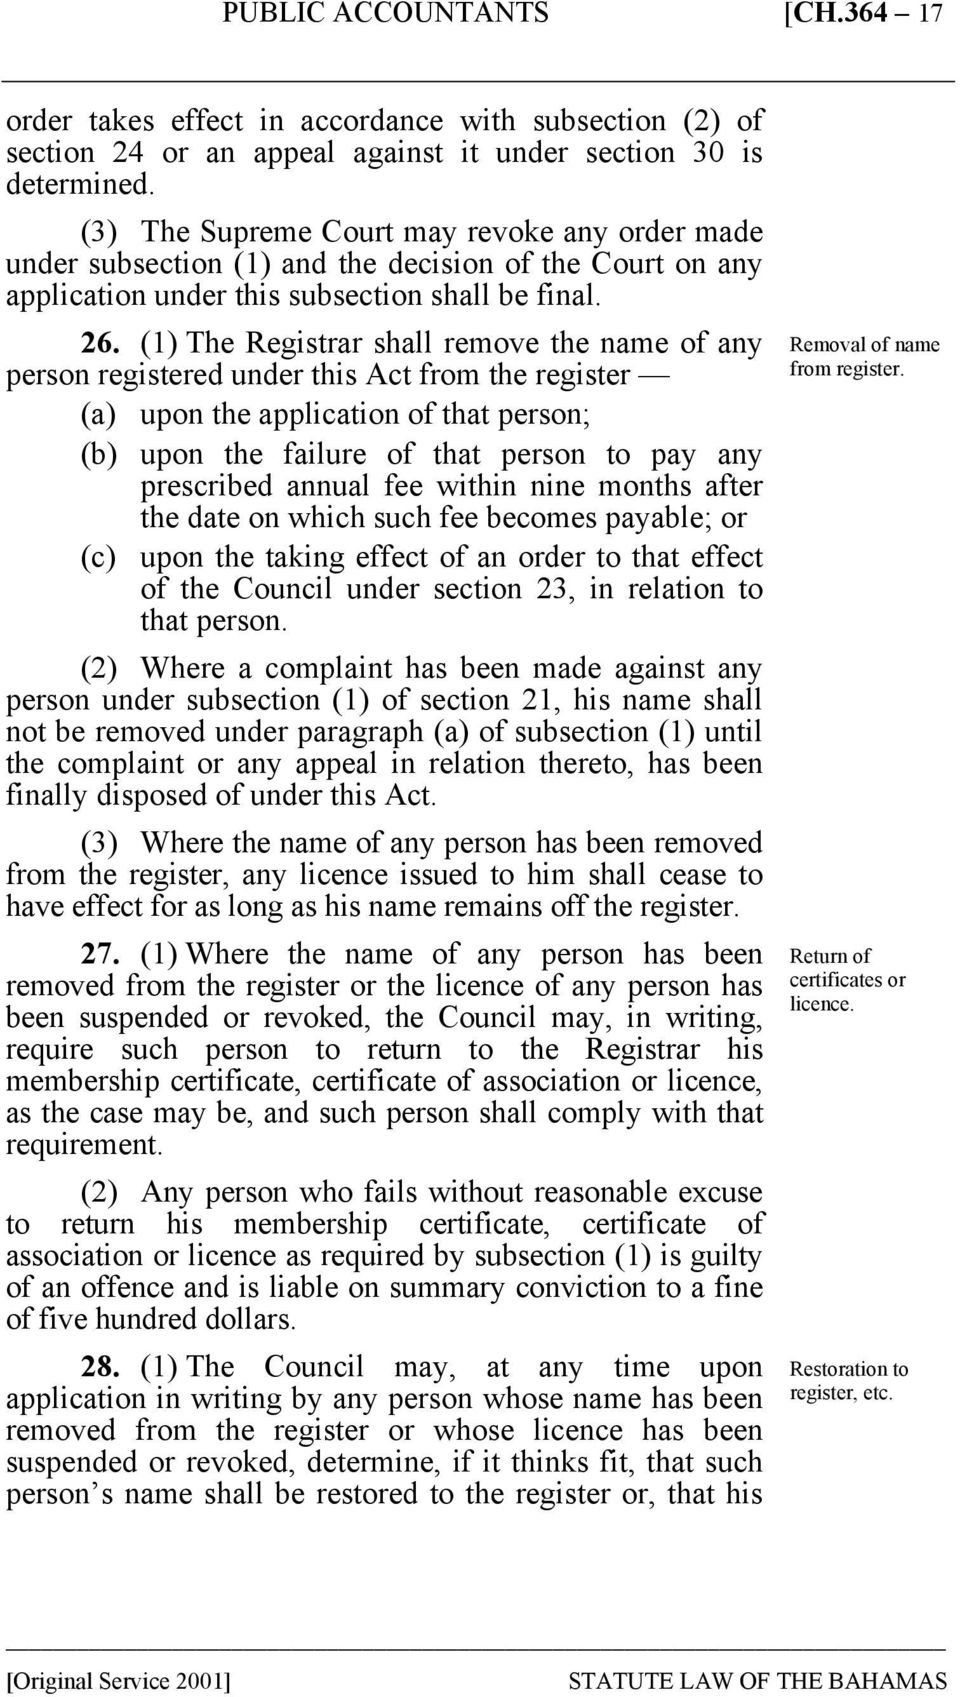 (1) The Registrar shall remove the name of any person registered under this Act from the register (a) upon the application of that person; (b) upon the failure of that person to pay any prescribed